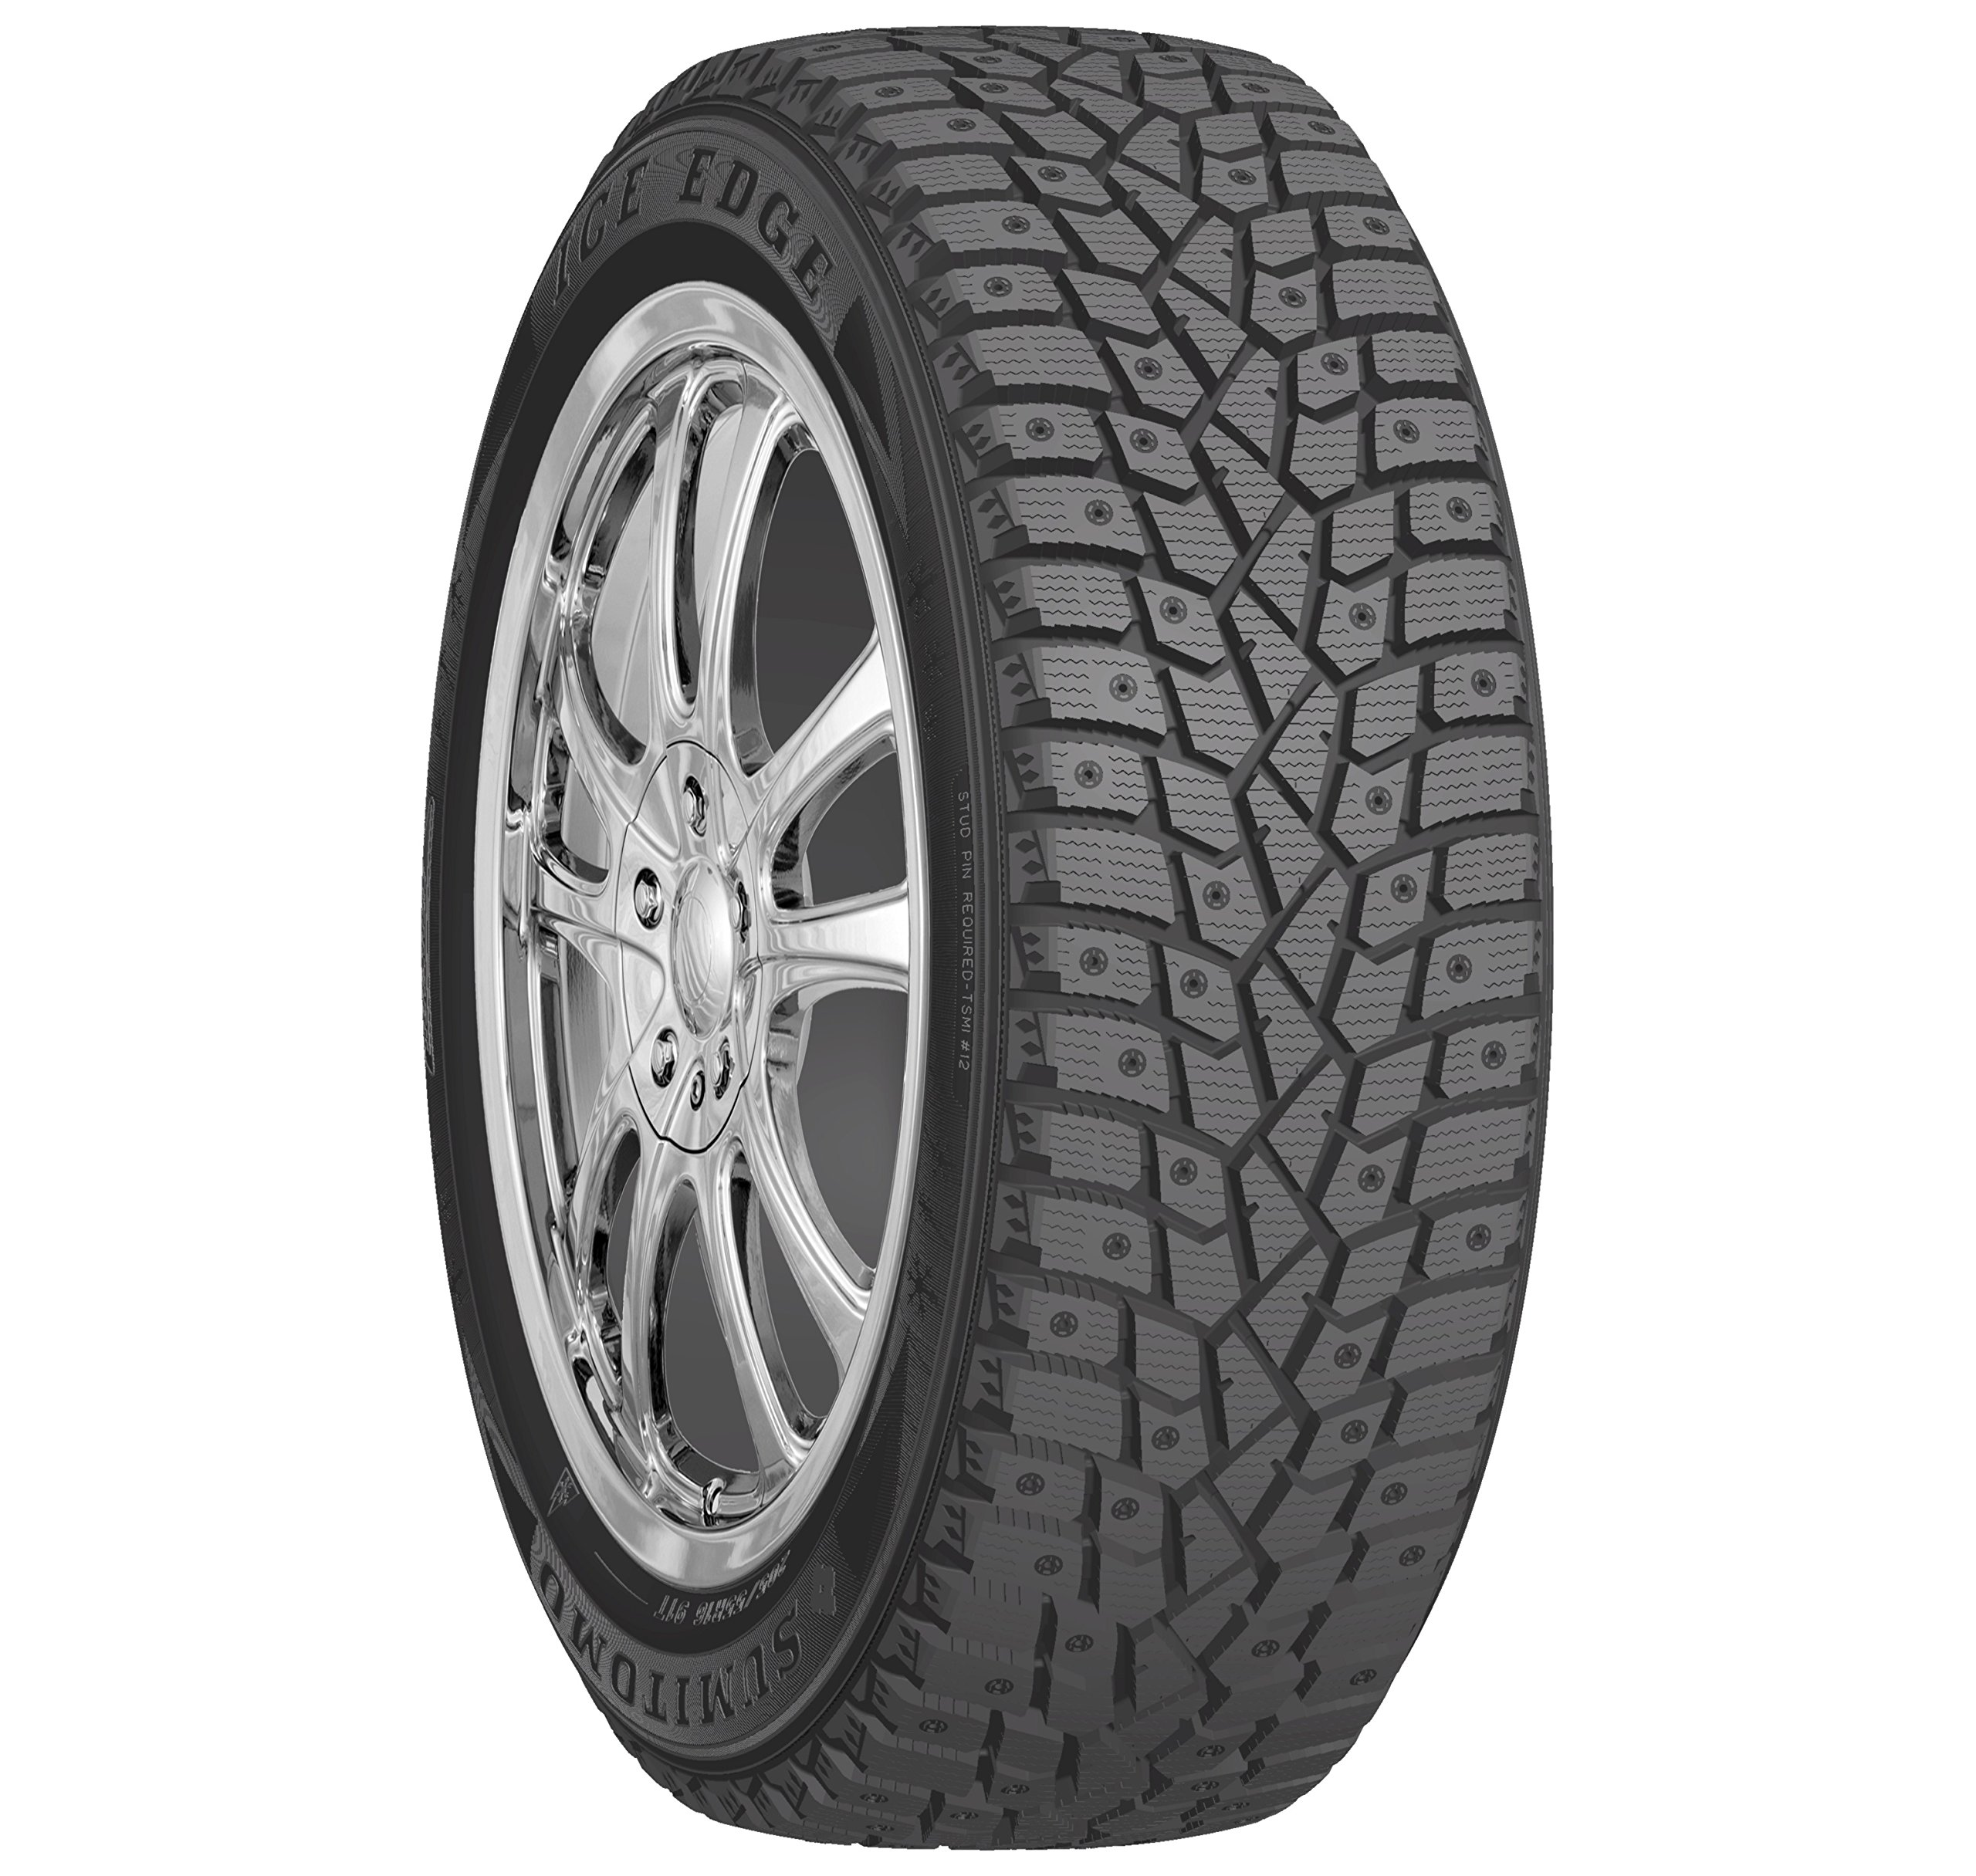 Sumitomo Ice Edge Snow Radial Tire-225/65R17 102T by SUMITOMO